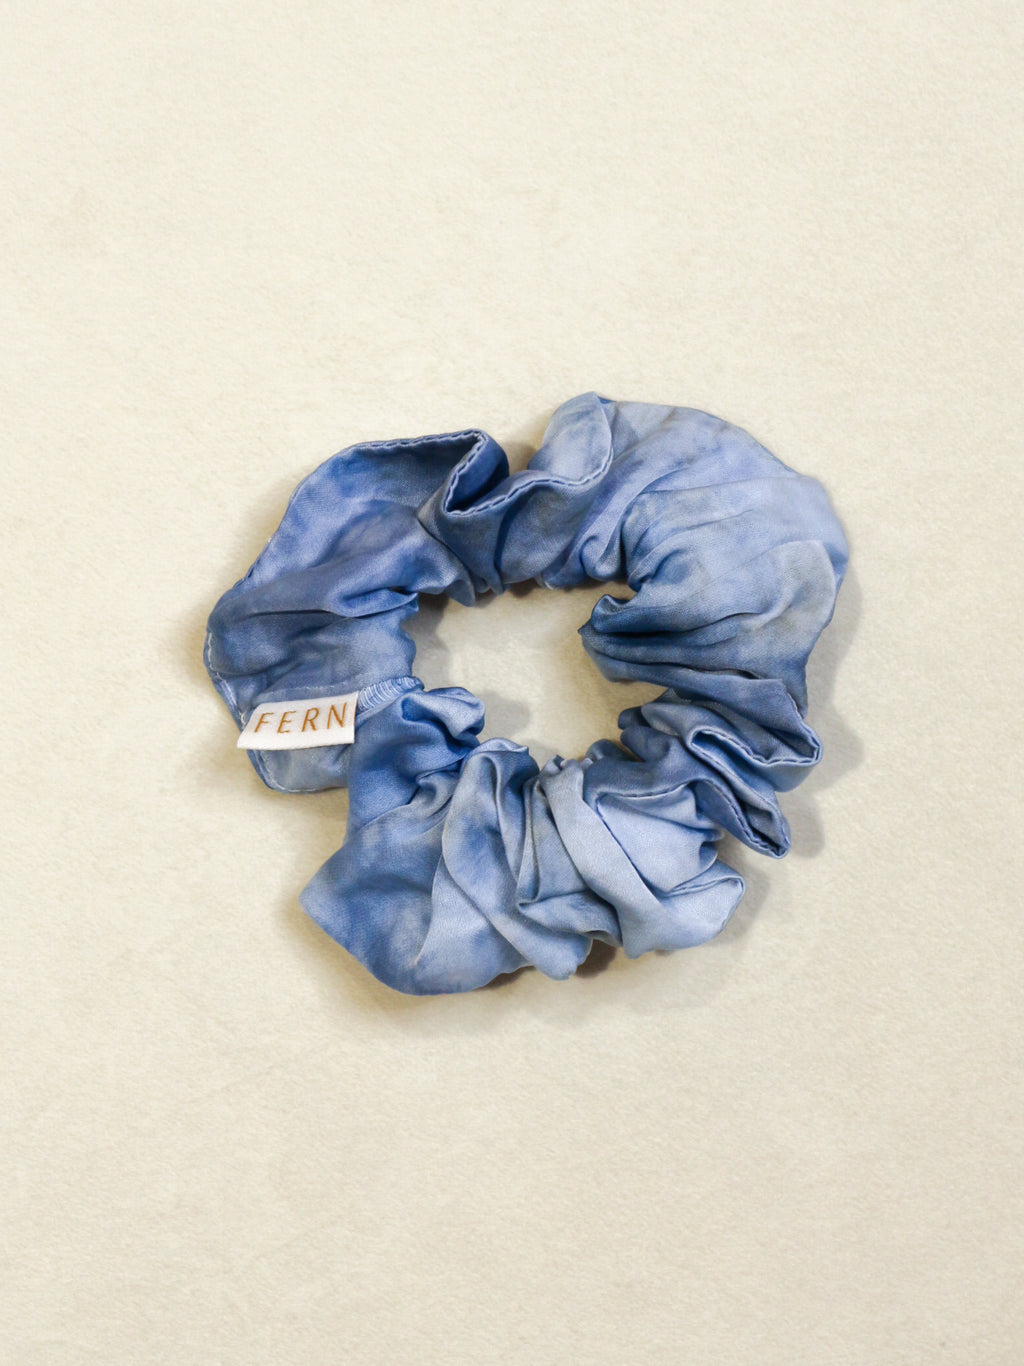 Cotton Silk Srunchie Duo - Blue - FERN